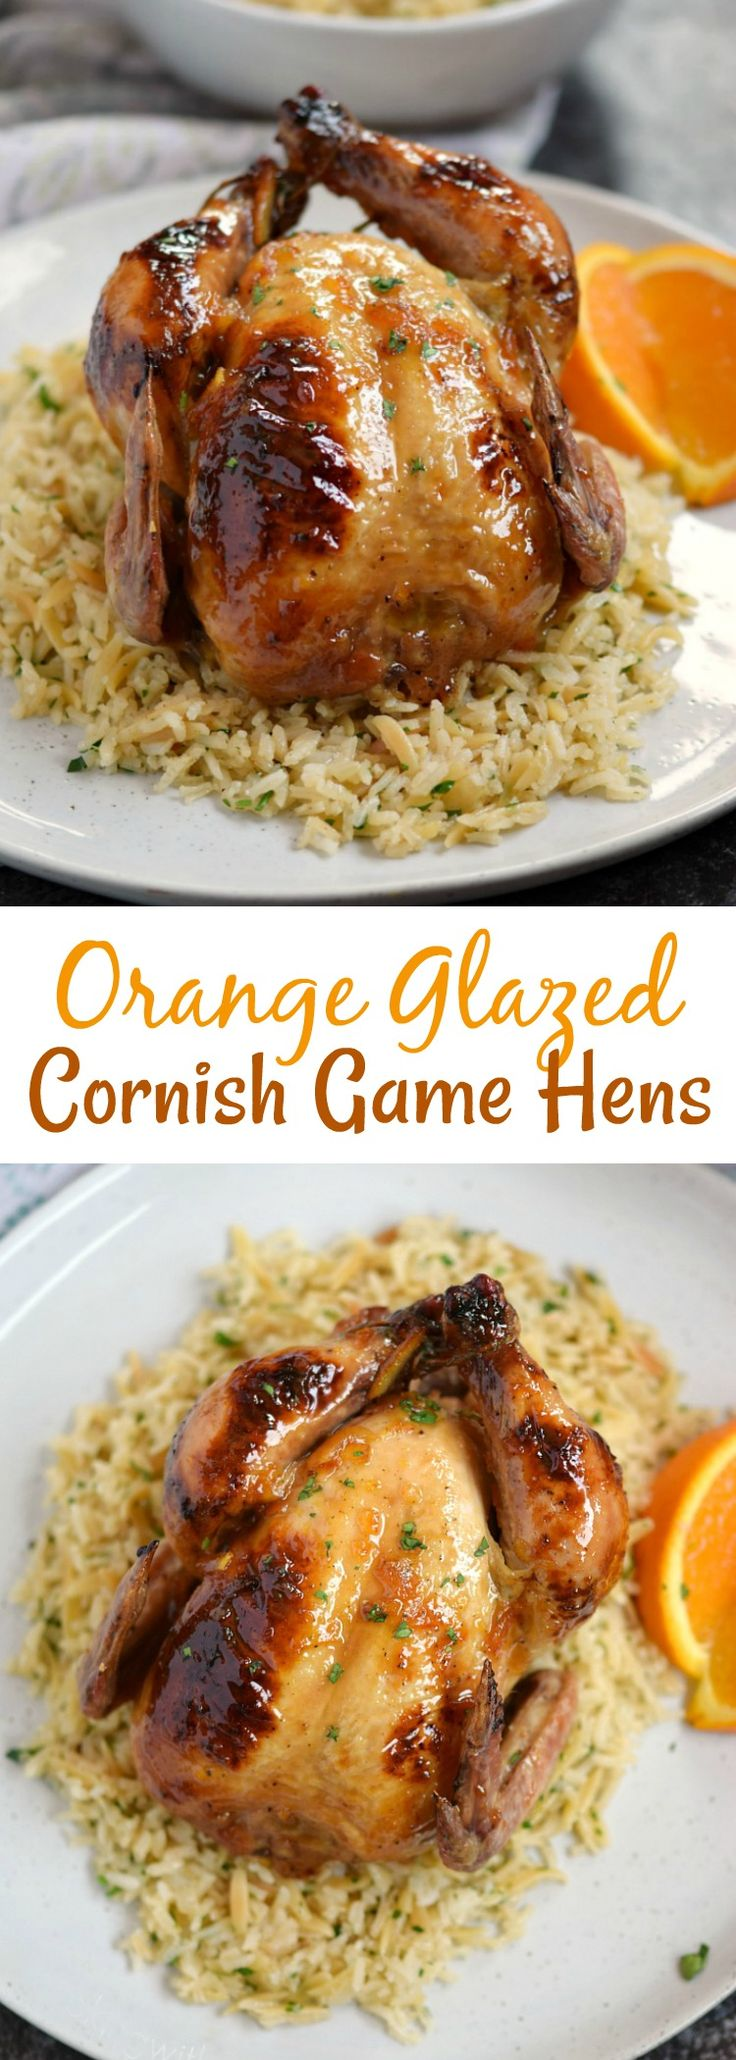 Jazz up date night with these delicious Orange Glazed Cornish Game Hens served on a bed of Rice Pilaf, for a fancy yet easy to prepare meal | cookingwithcurls.com